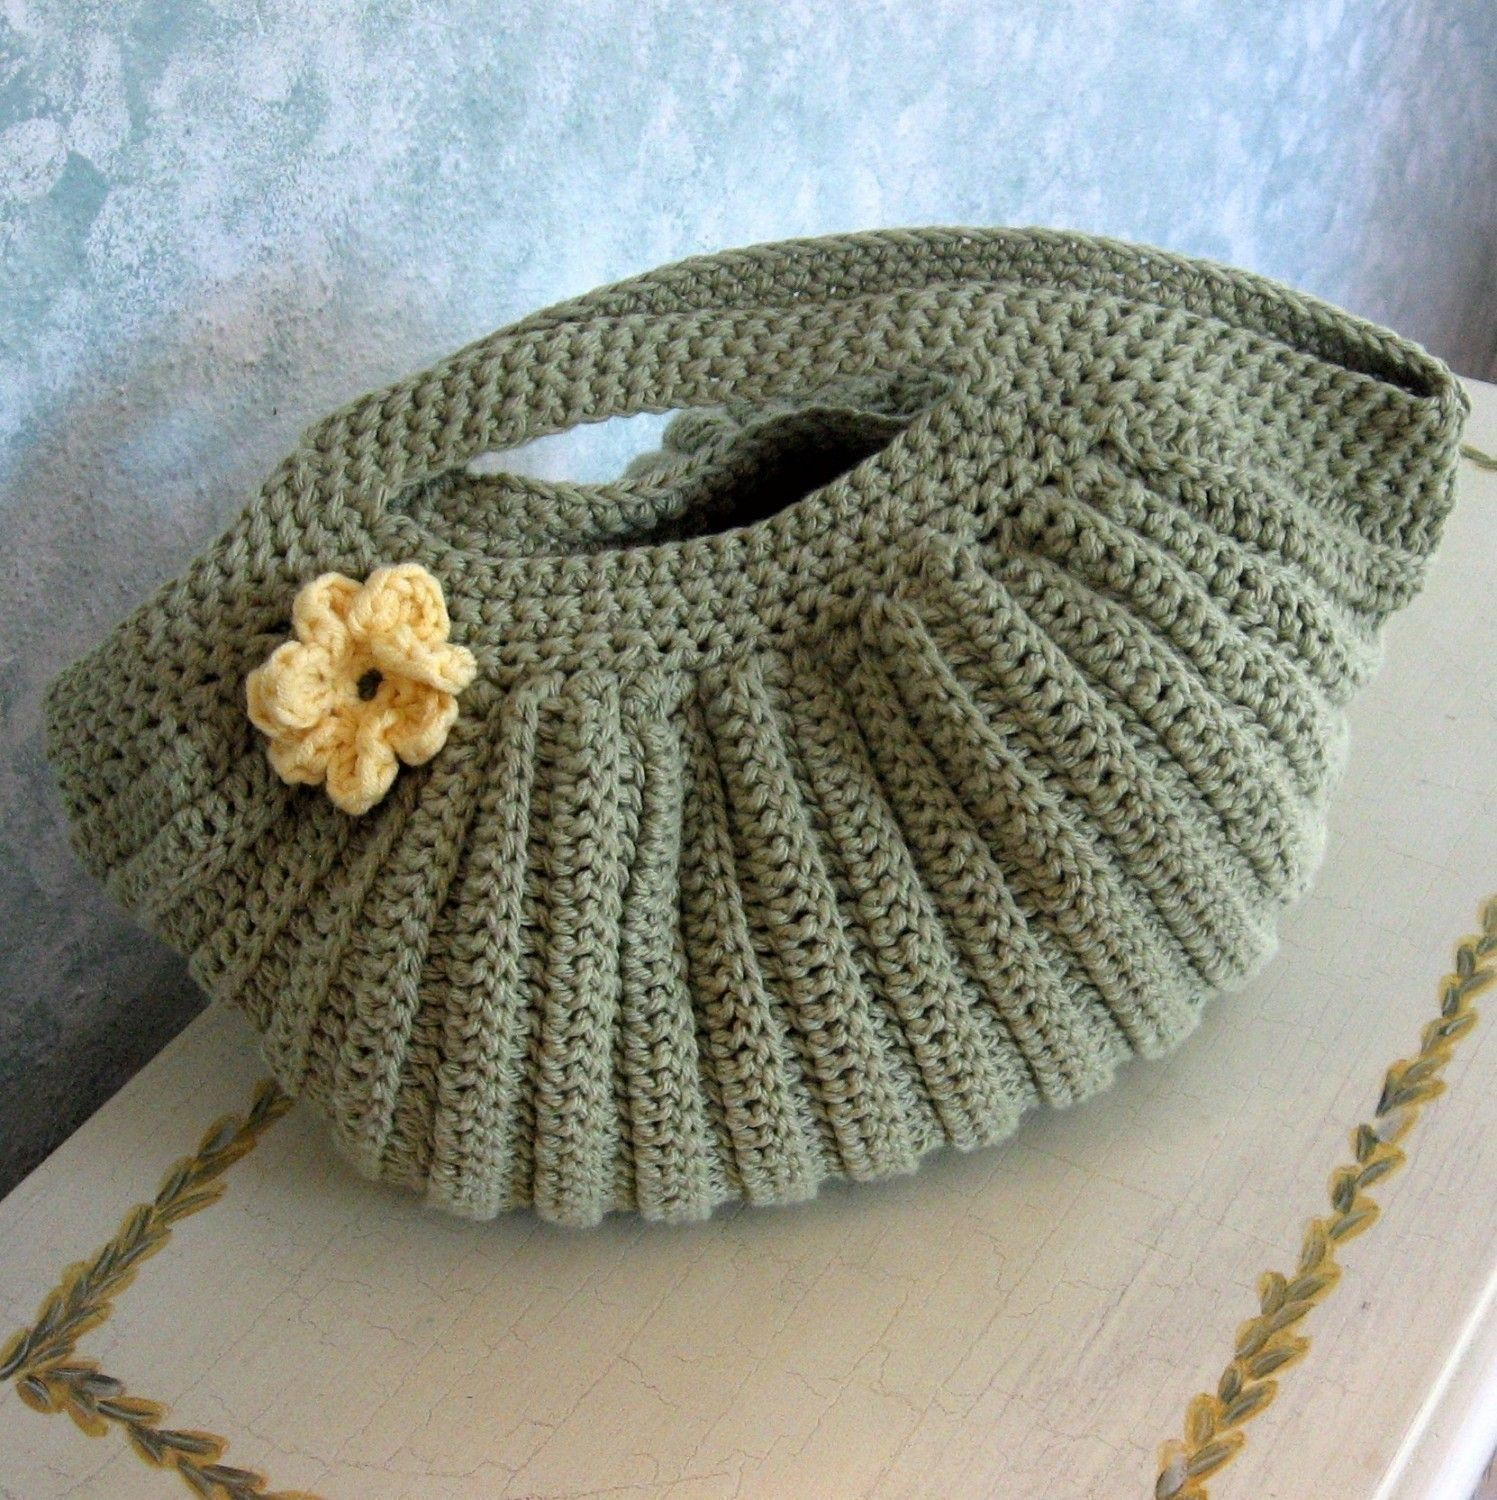 Crochet purse pattern pleated clam shell shape with flower trim crochet purse pattern pleated clam shell shape with flower trim pdf easy to make resell finished bankloansurffo Gallery